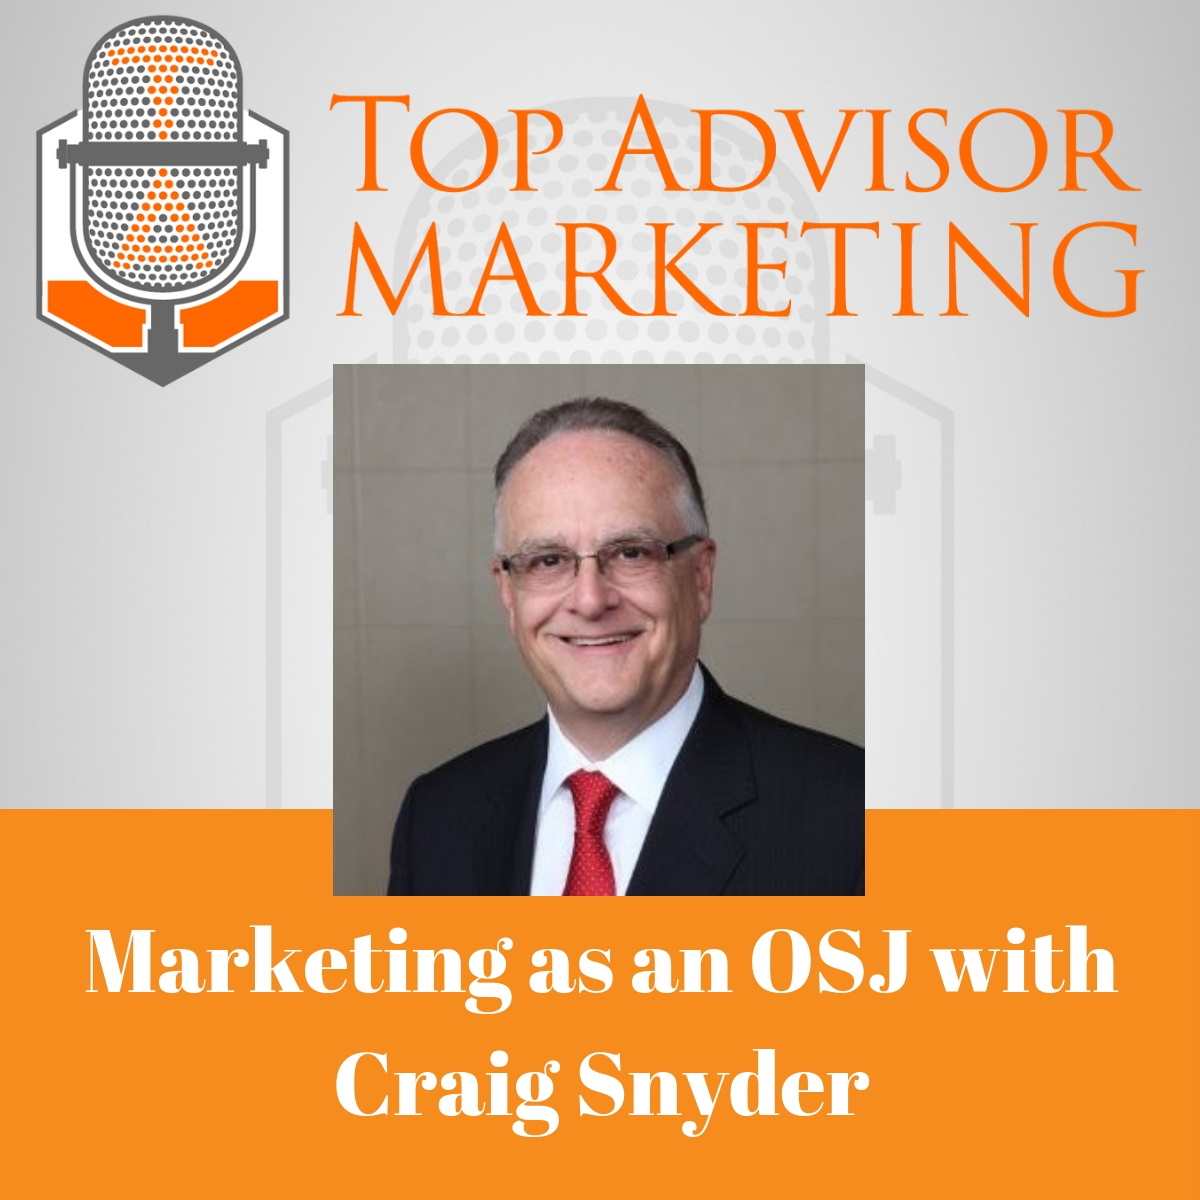 Episode 141 - Marketing as an OSJ with Craig Snyder